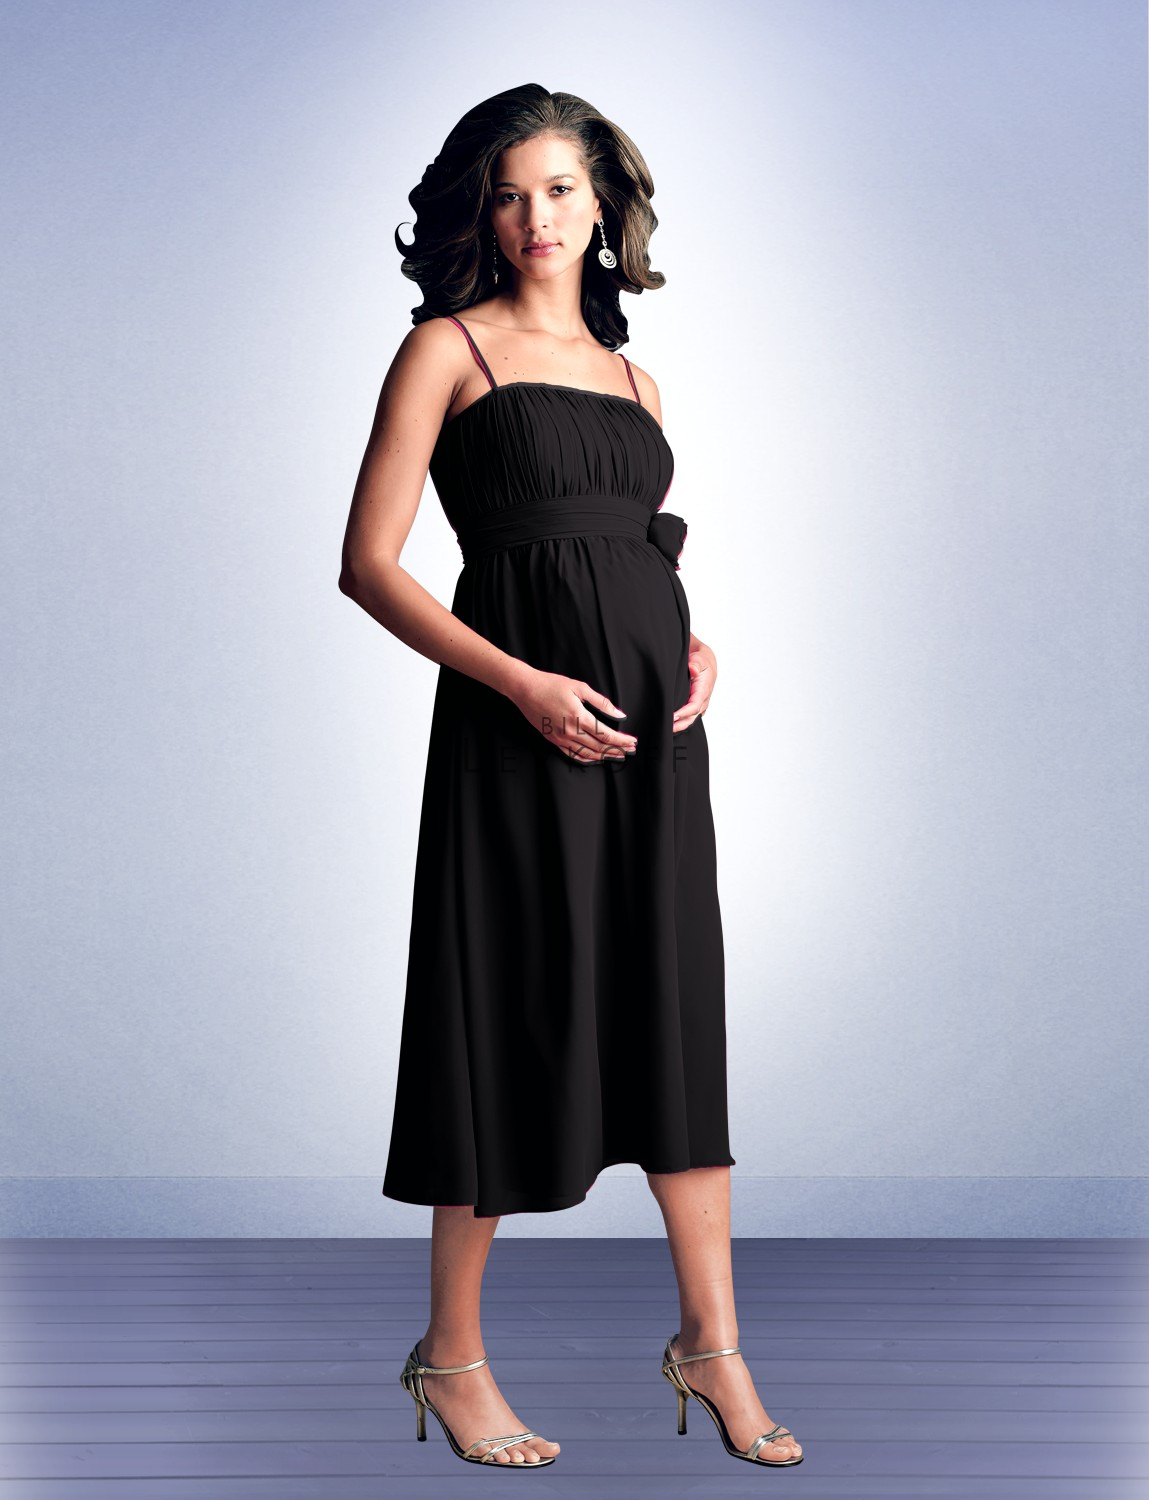 Collezione fortuna bridesmaids dresses series part 2 one of my if the pregnancy is beyond 3 months i would just order a maternity bridesmaids dress for her this can be worn also should she have given birth a few weeks ombrellifo Choice Image